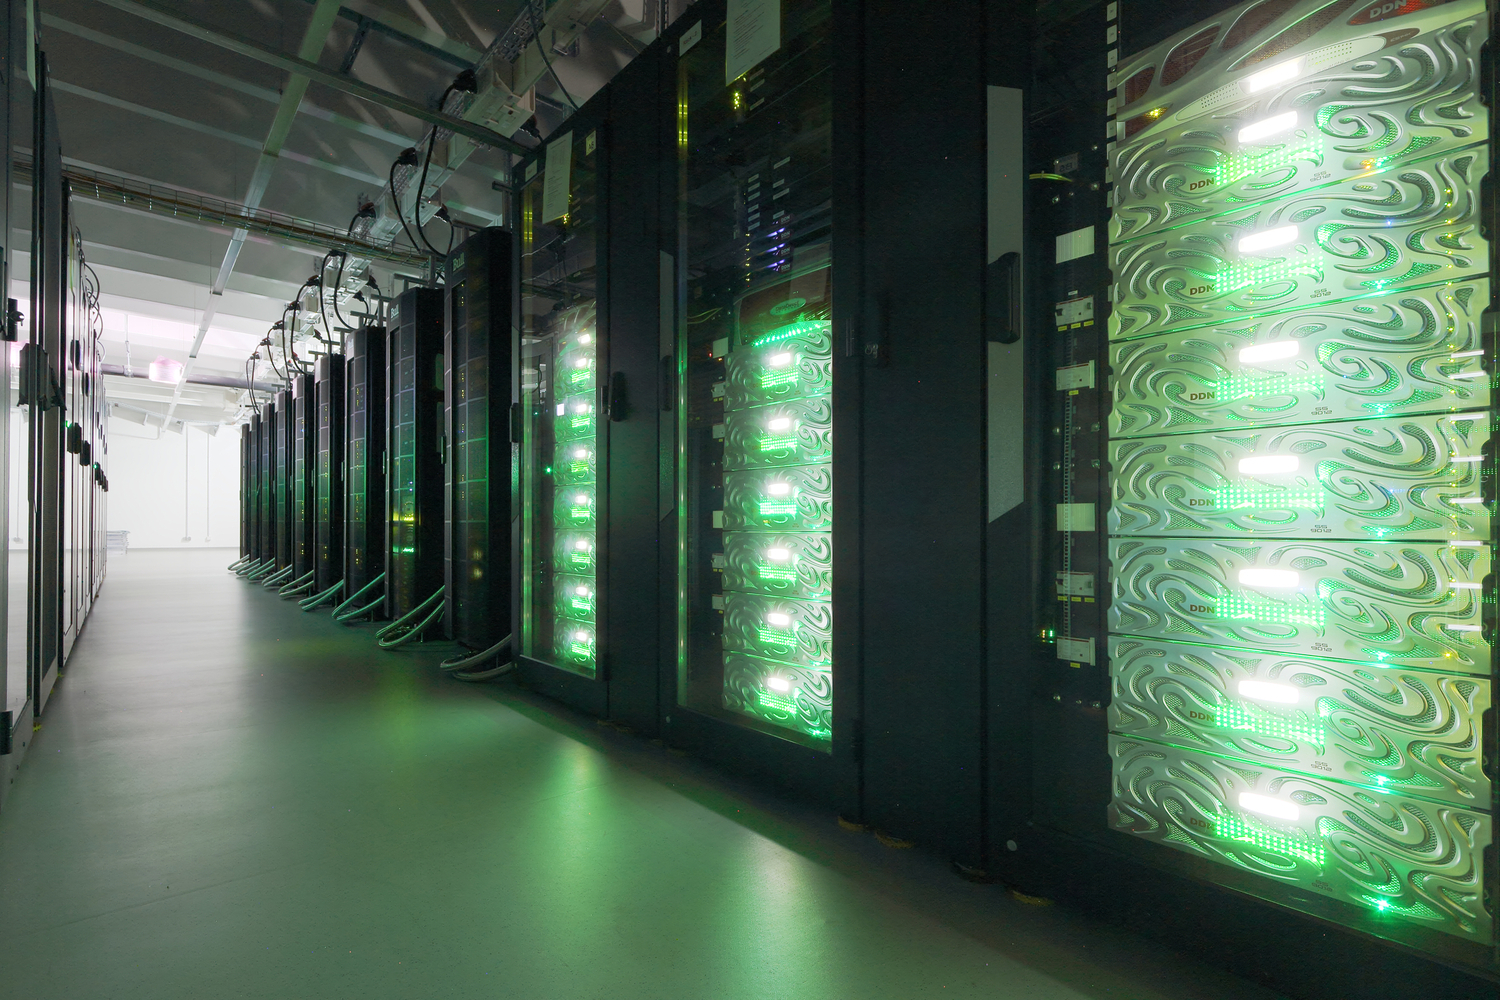 Top ranking for Göttingen supercomputer: in the latest listing of the Top500 world's fastest computers, the